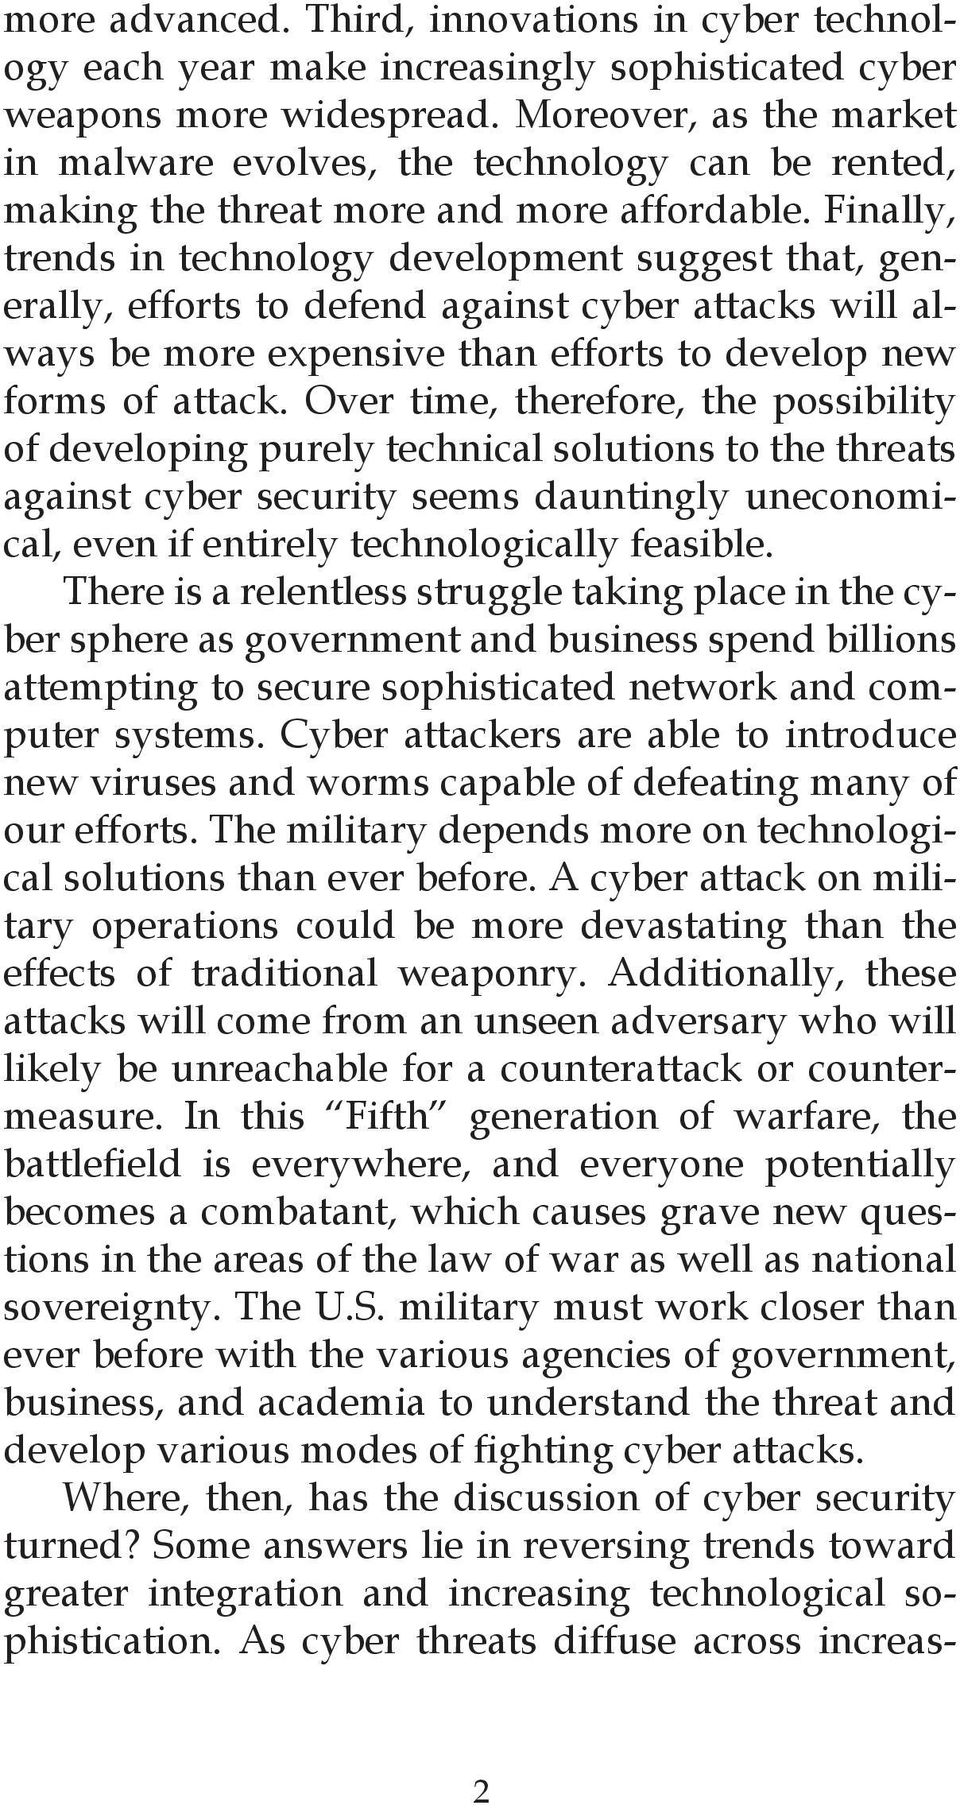 Finally, trends in technology development suggest that, generally, efforts to defend against cyber attacks will always be more expensive than efforts to develop new forms of attack.